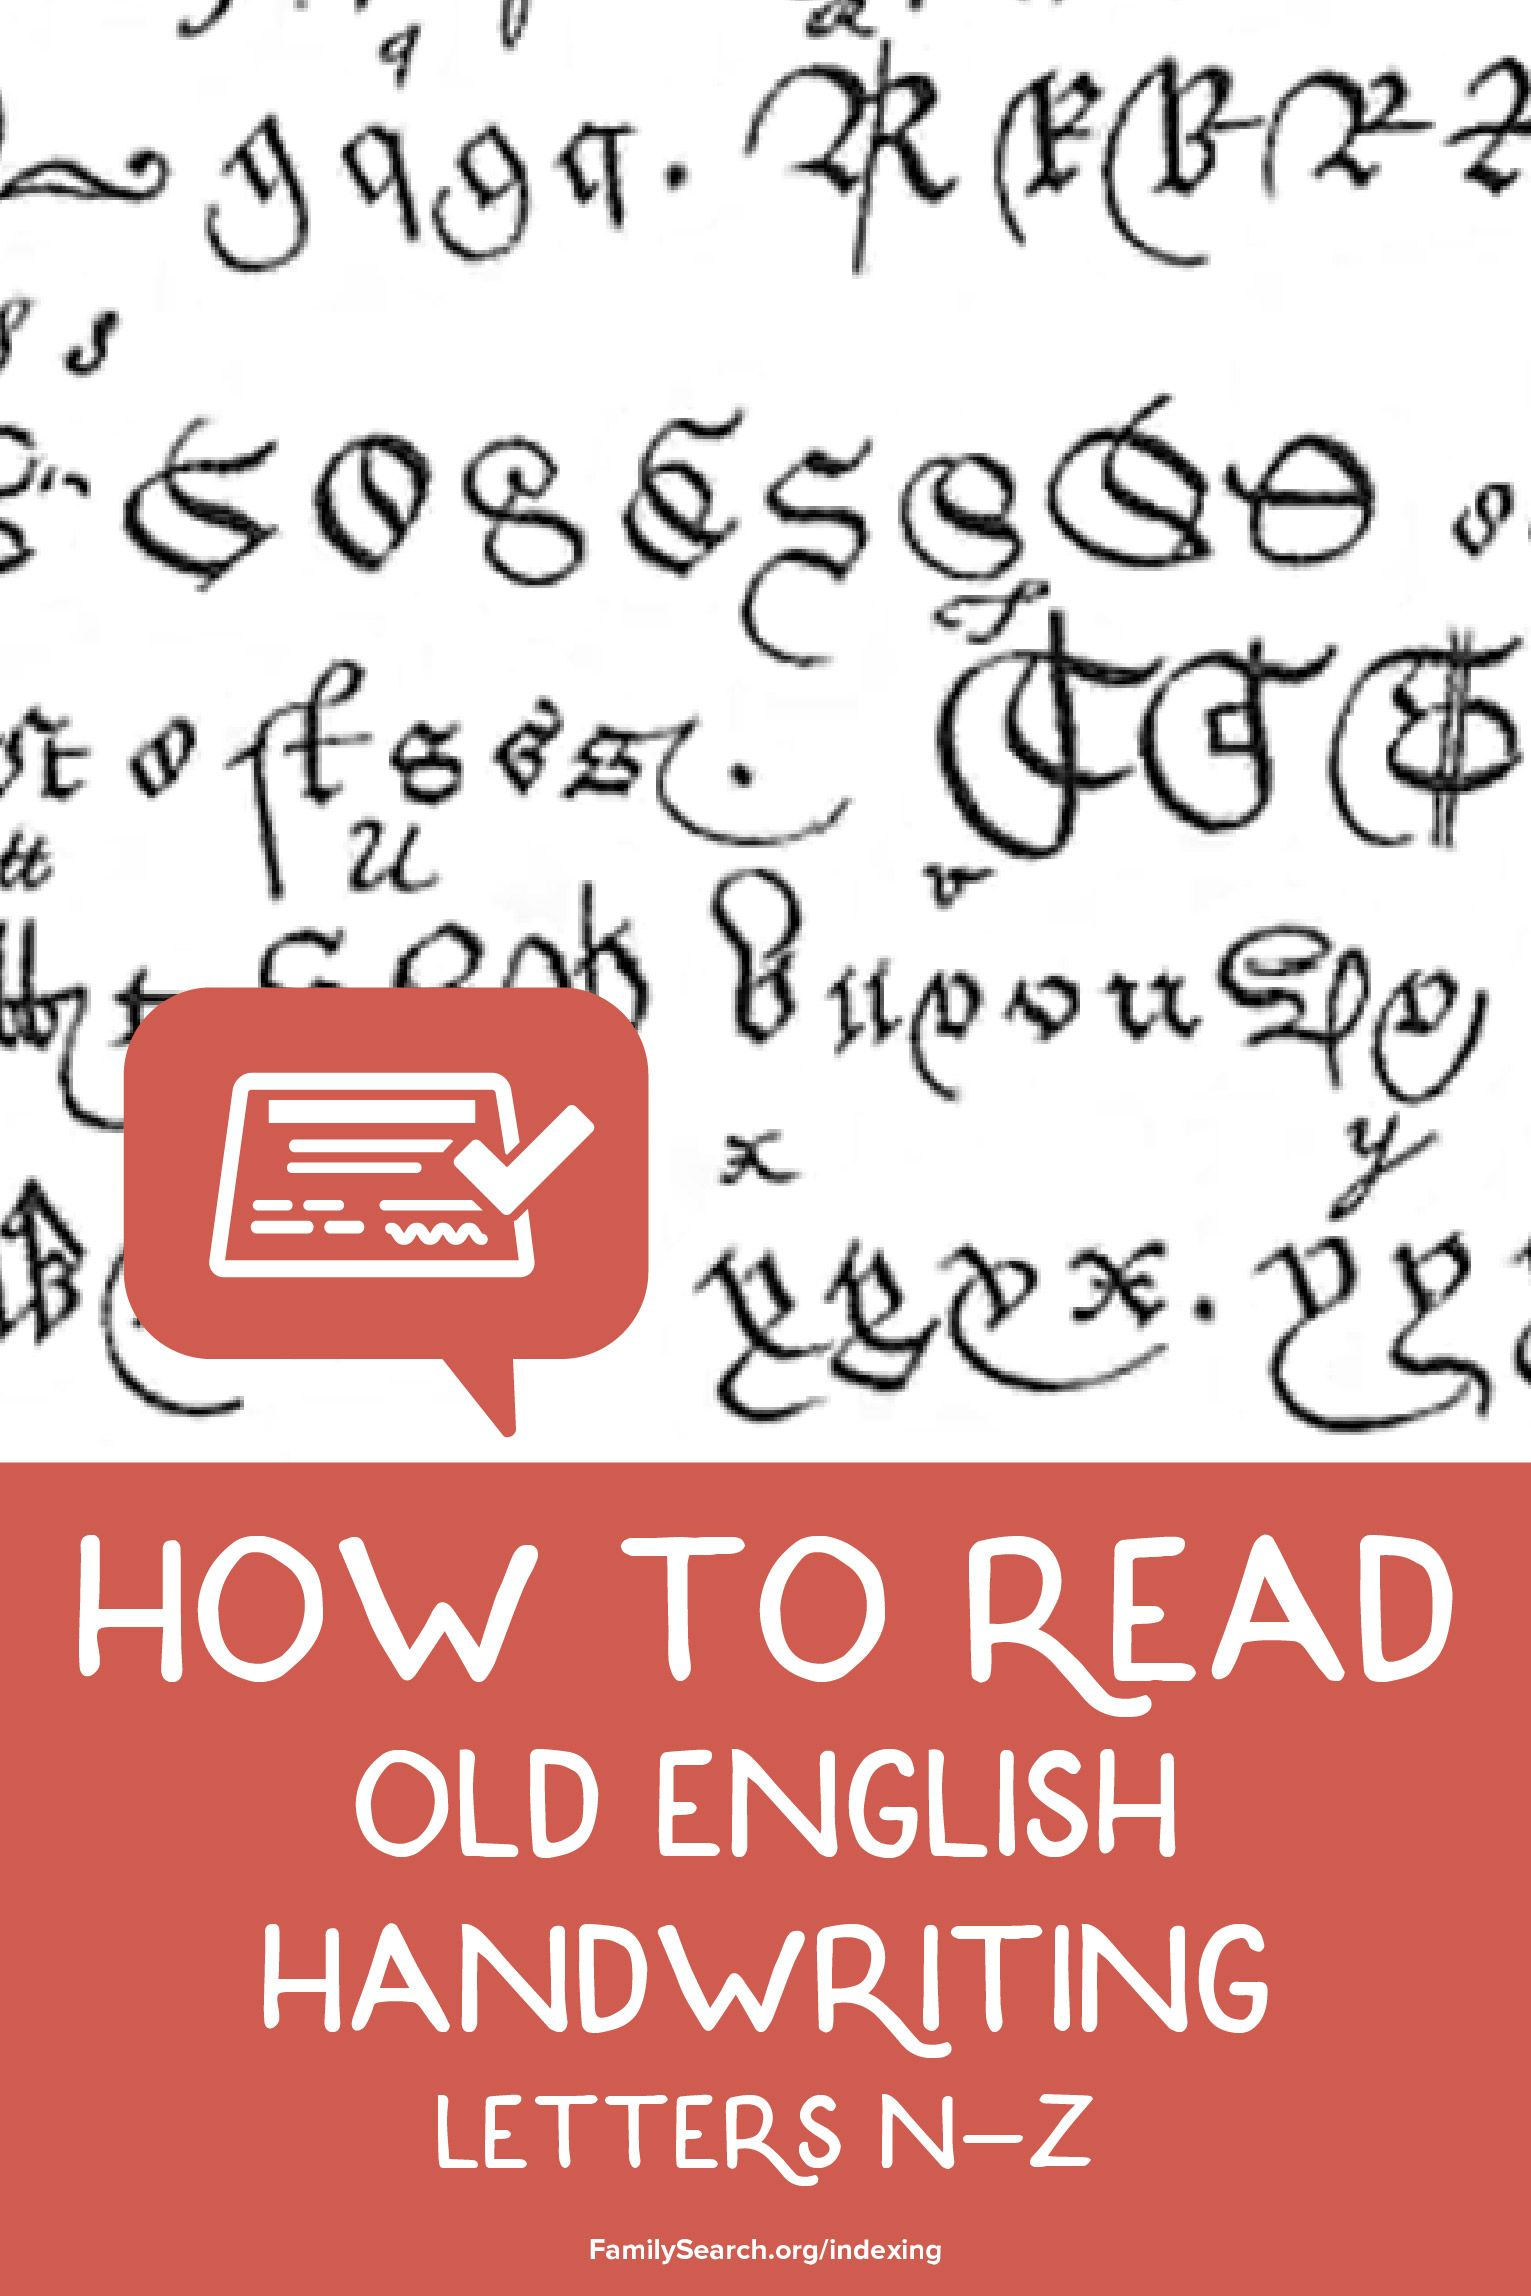 how to read old english handwriting